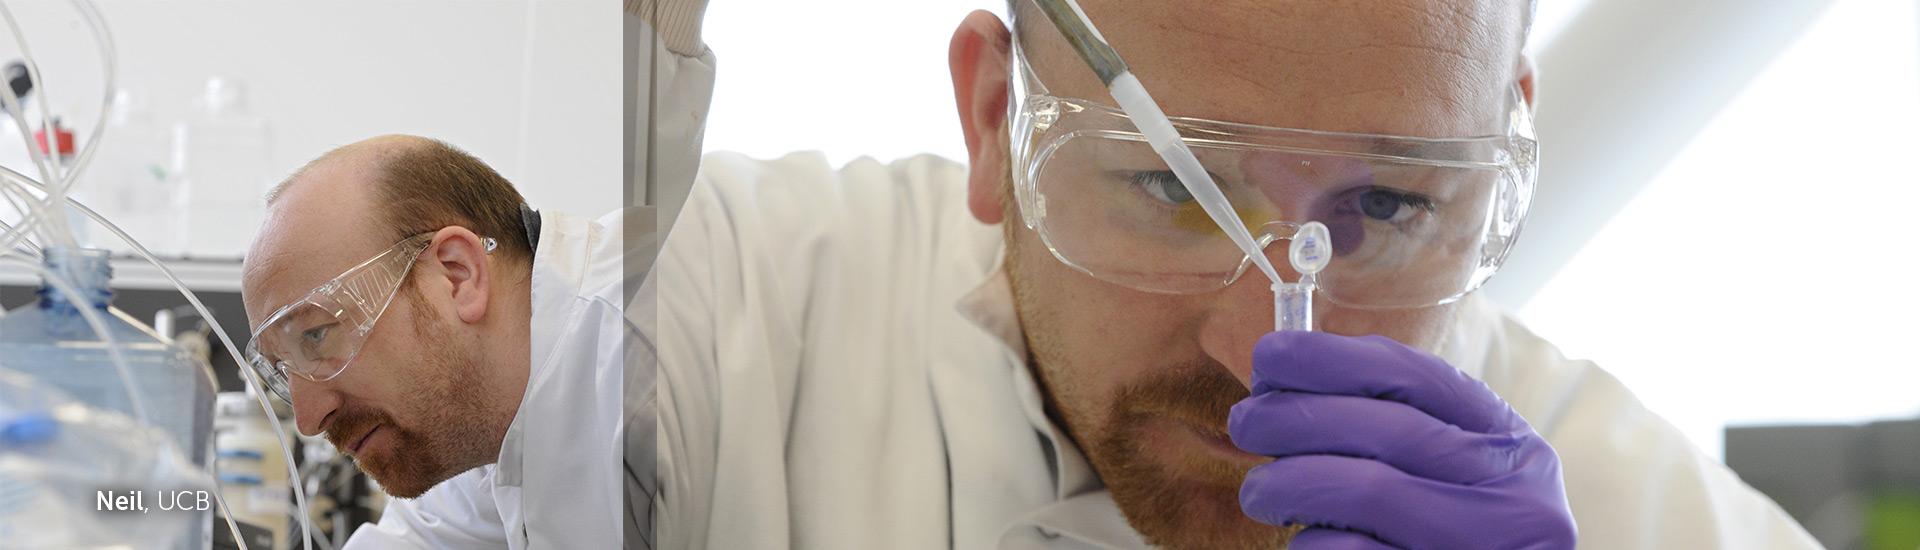 Scientist working in lab with protective glasses